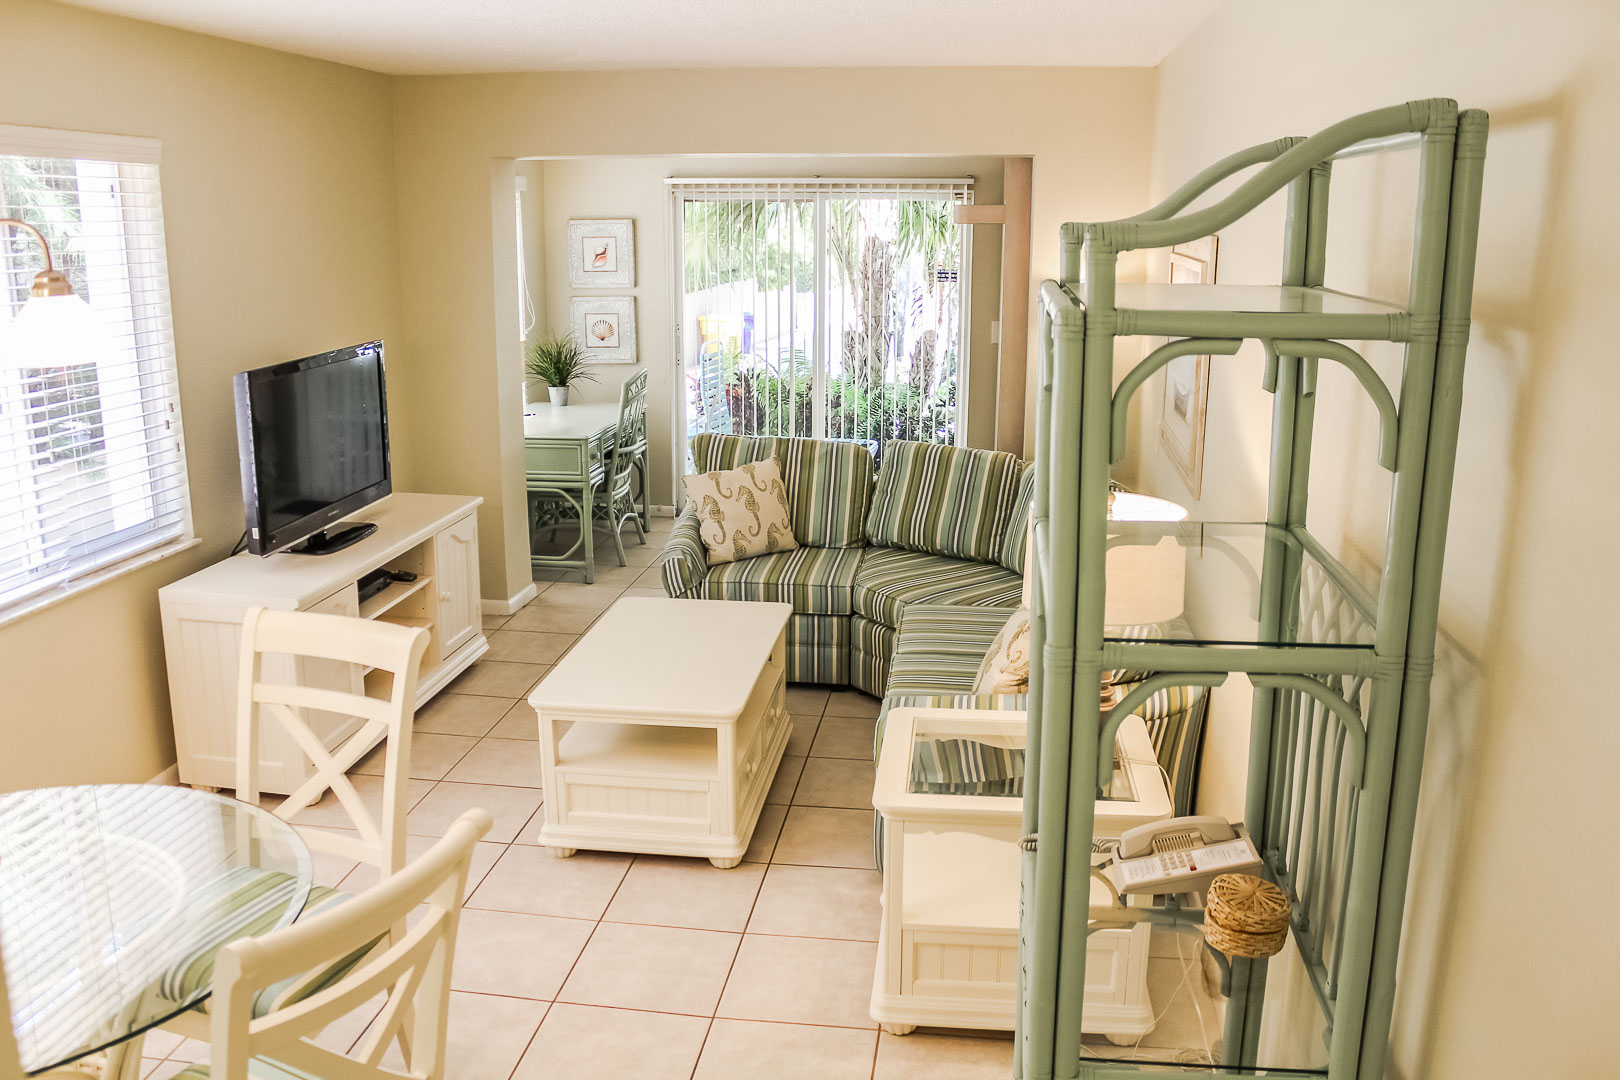 A refreshing living room at VRI's Berkshire by the Sea in Florida.